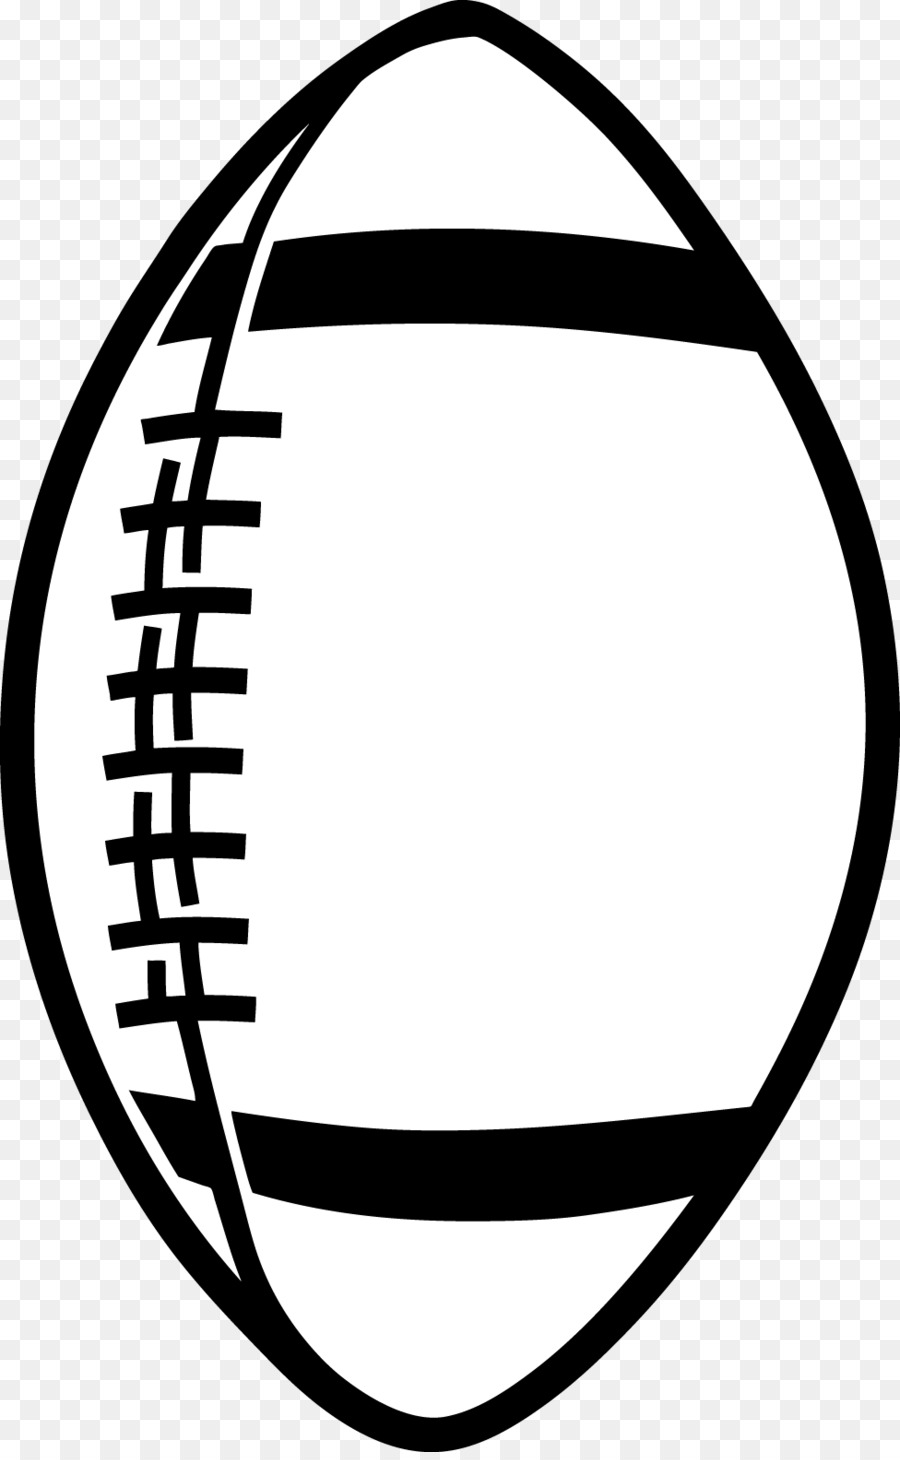 american football football player black and white clip art